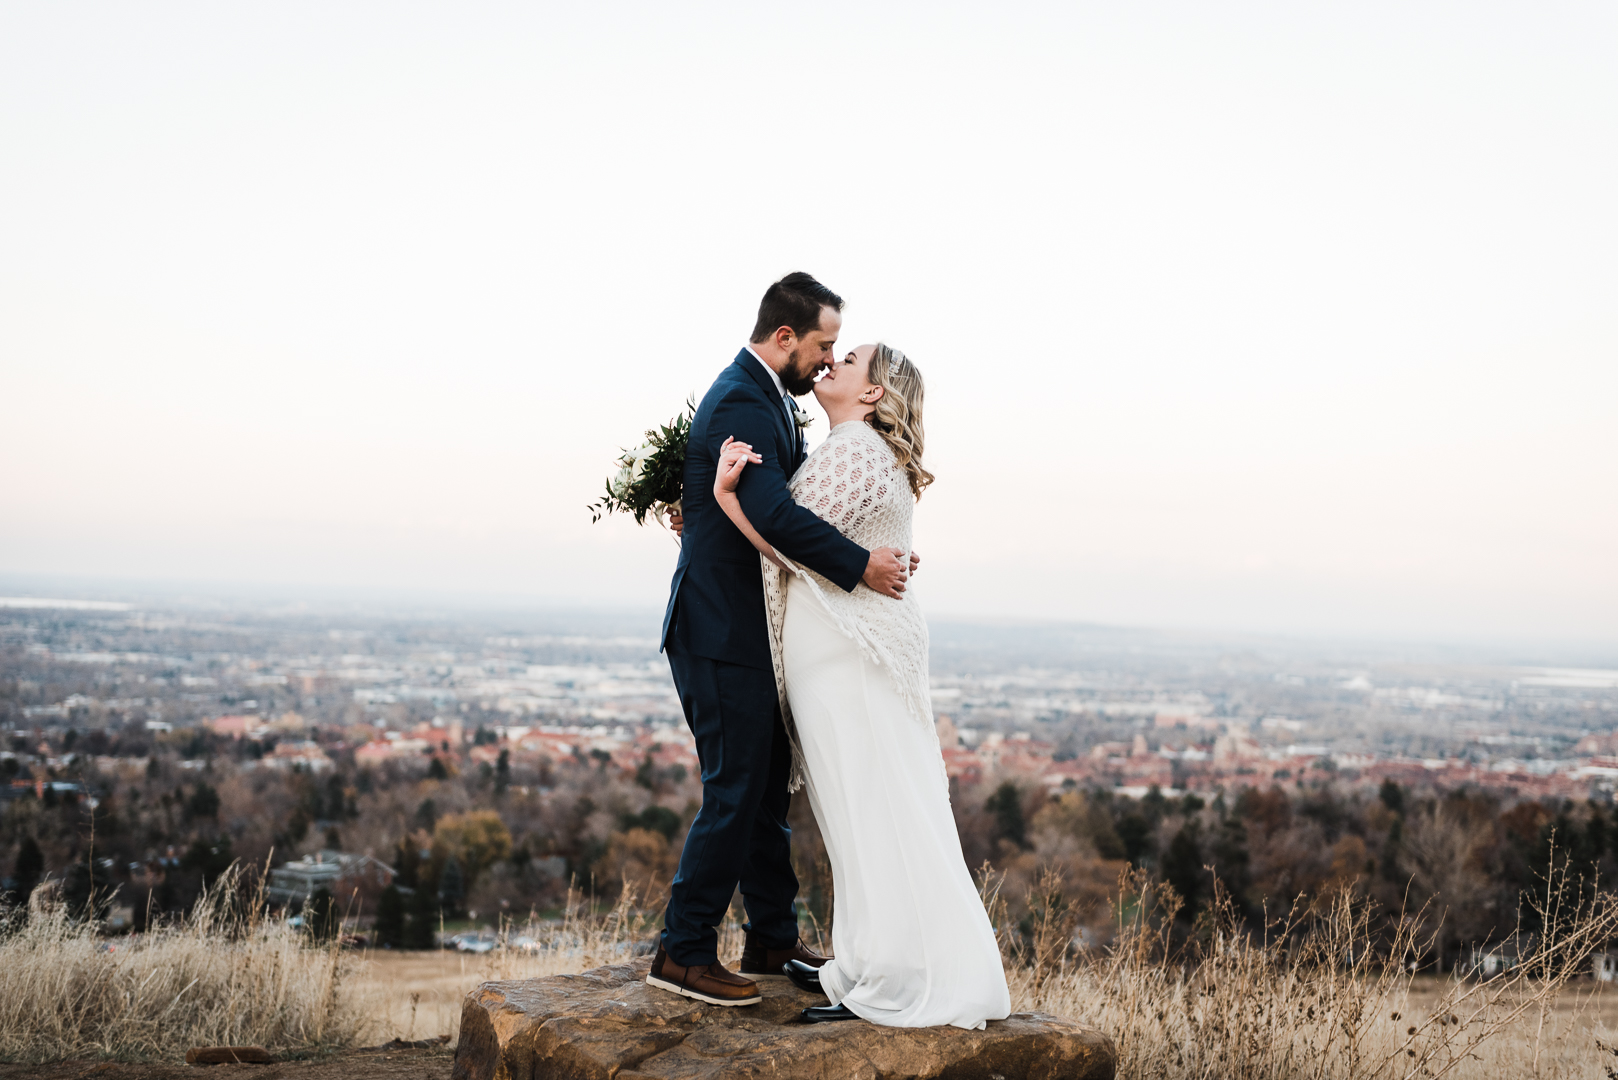 20181108-Colorado-Elopement-Boulder-Chautauqua-Haley-Kyle-125